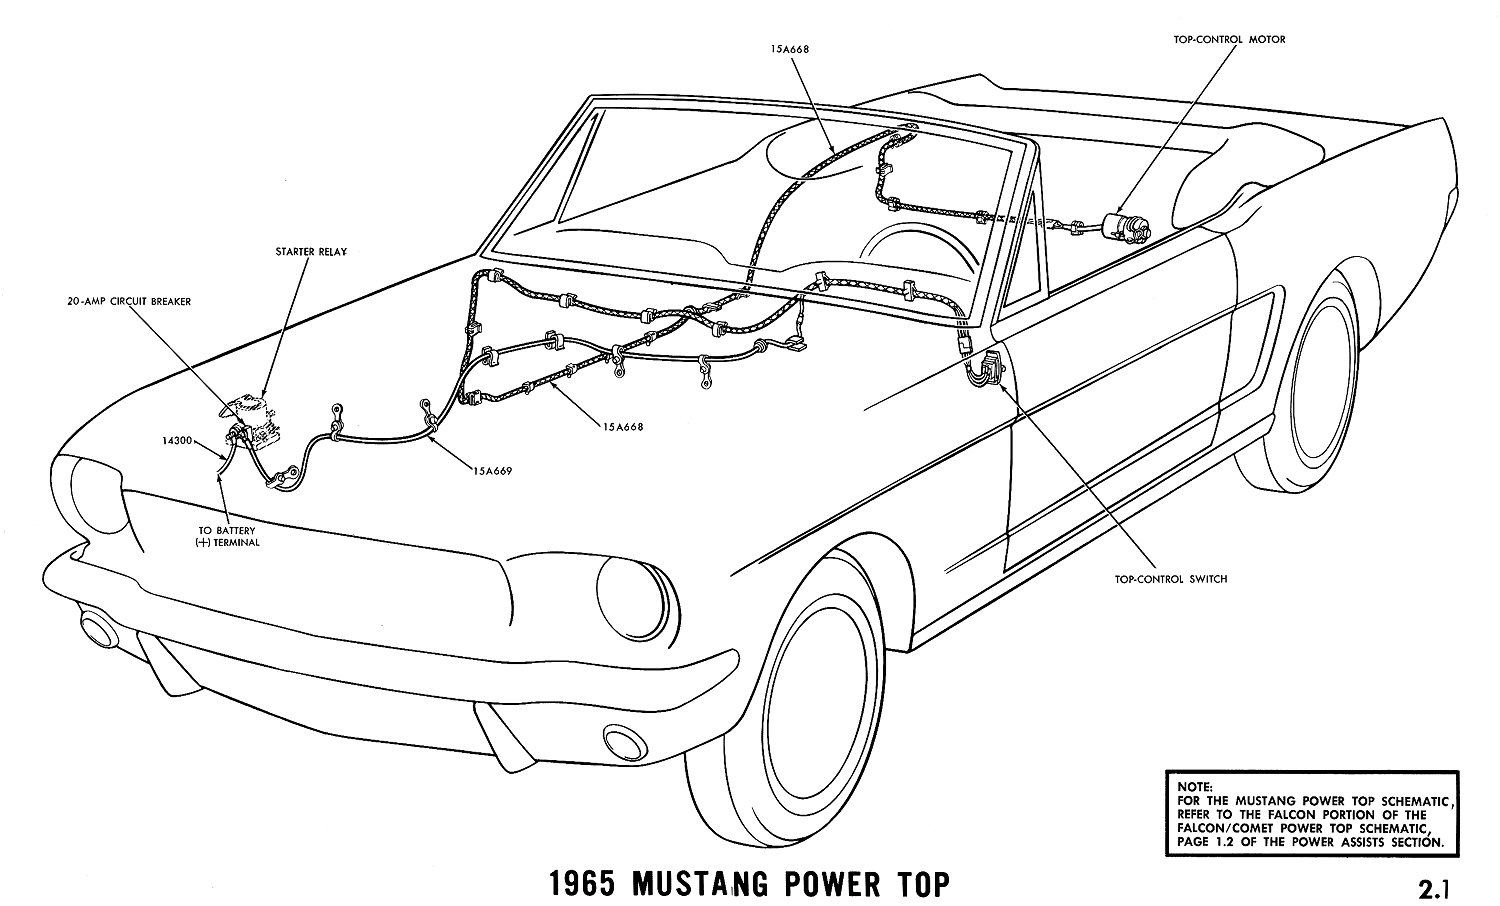 1966 Mustang Color Wiring Diagram Library 1968 Coupe 65 Wiper Detailed Schematics 1965 For Lighting